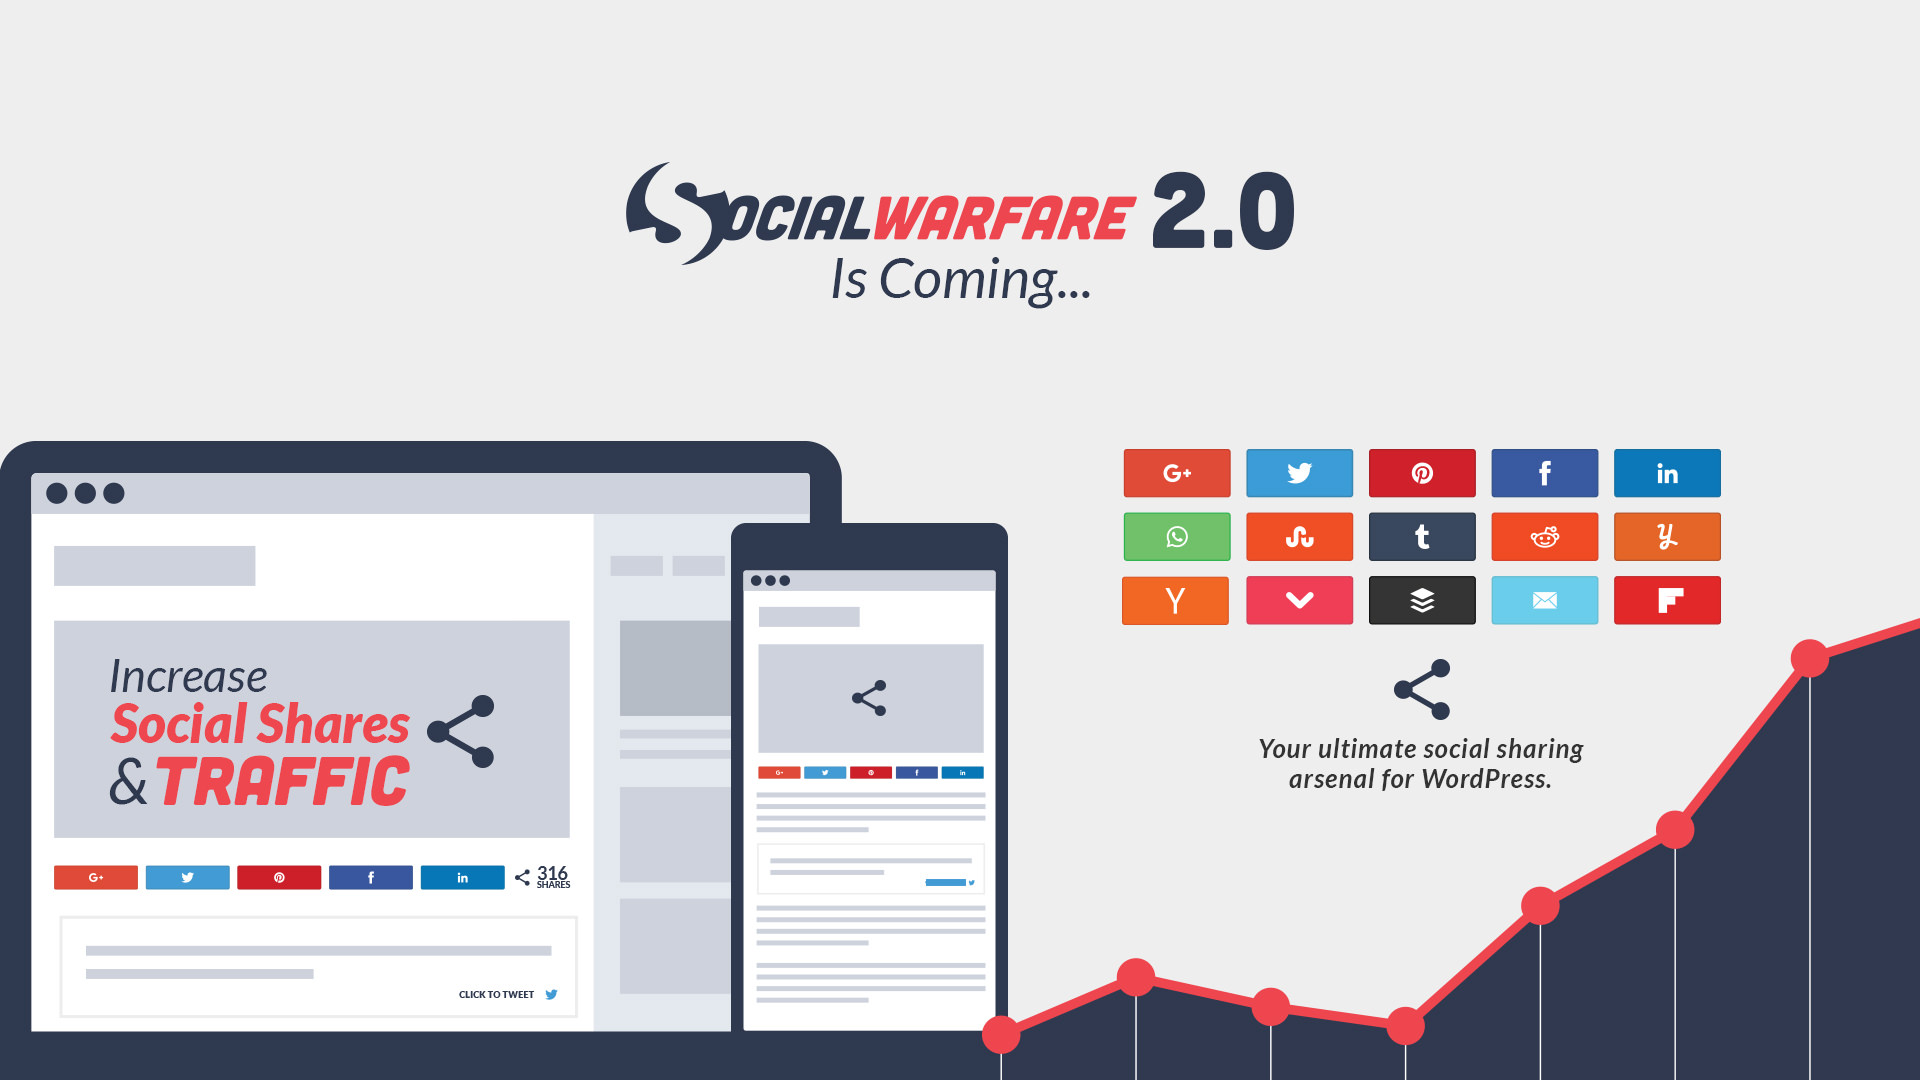 Social Warfare 2.0 Is Coming